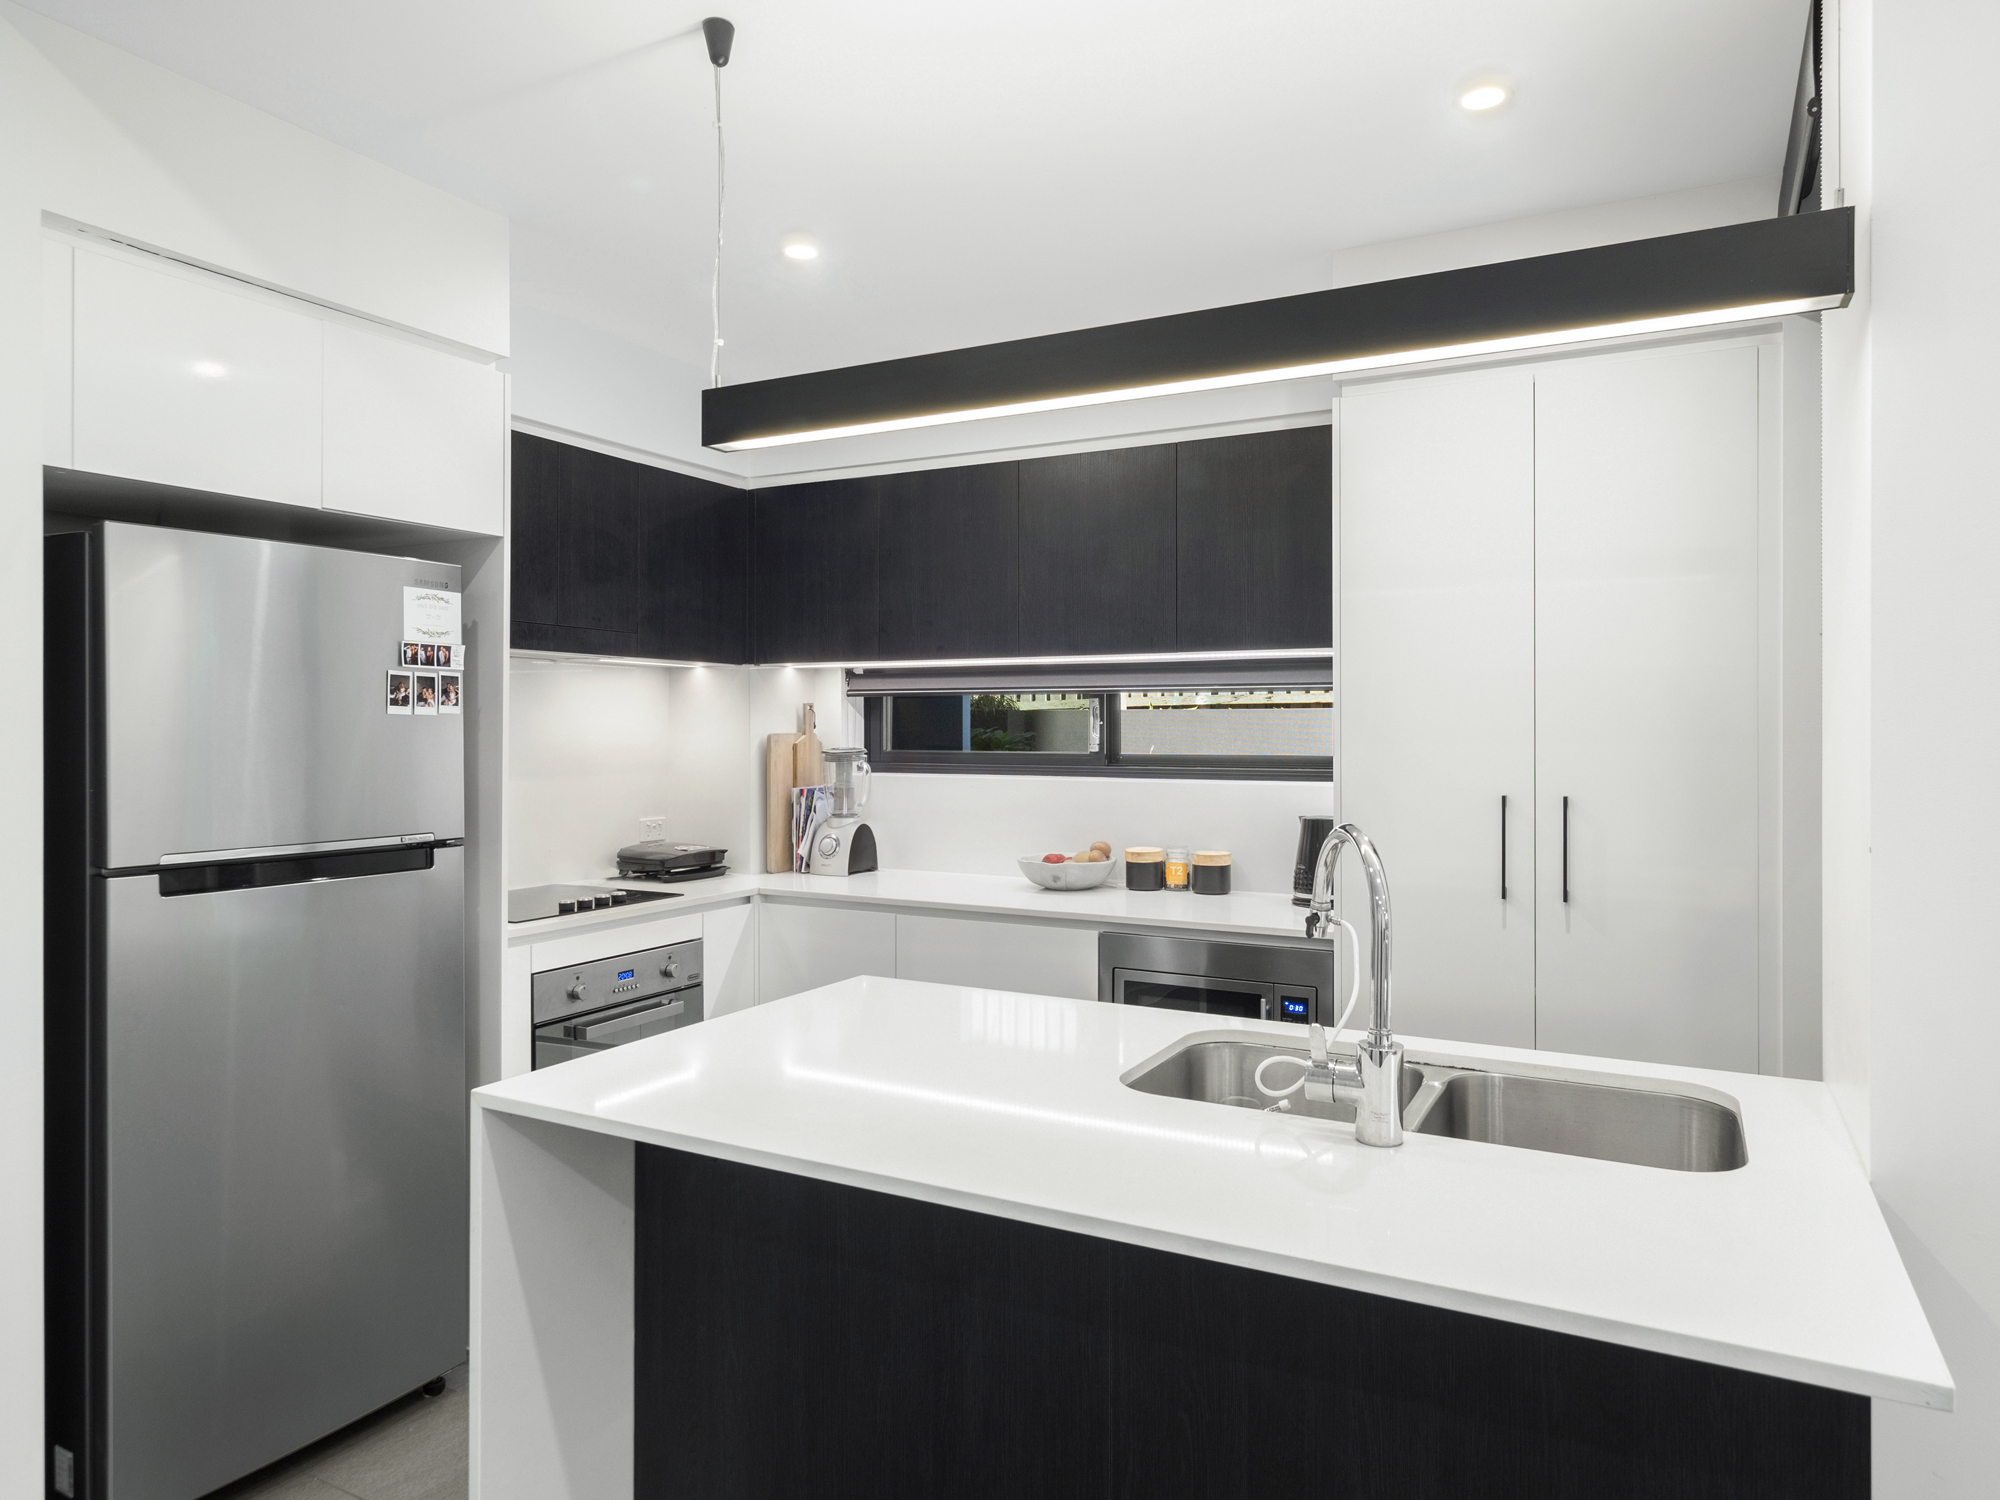 The kitchen area - Apartment photography at Upper Mt Gravatt